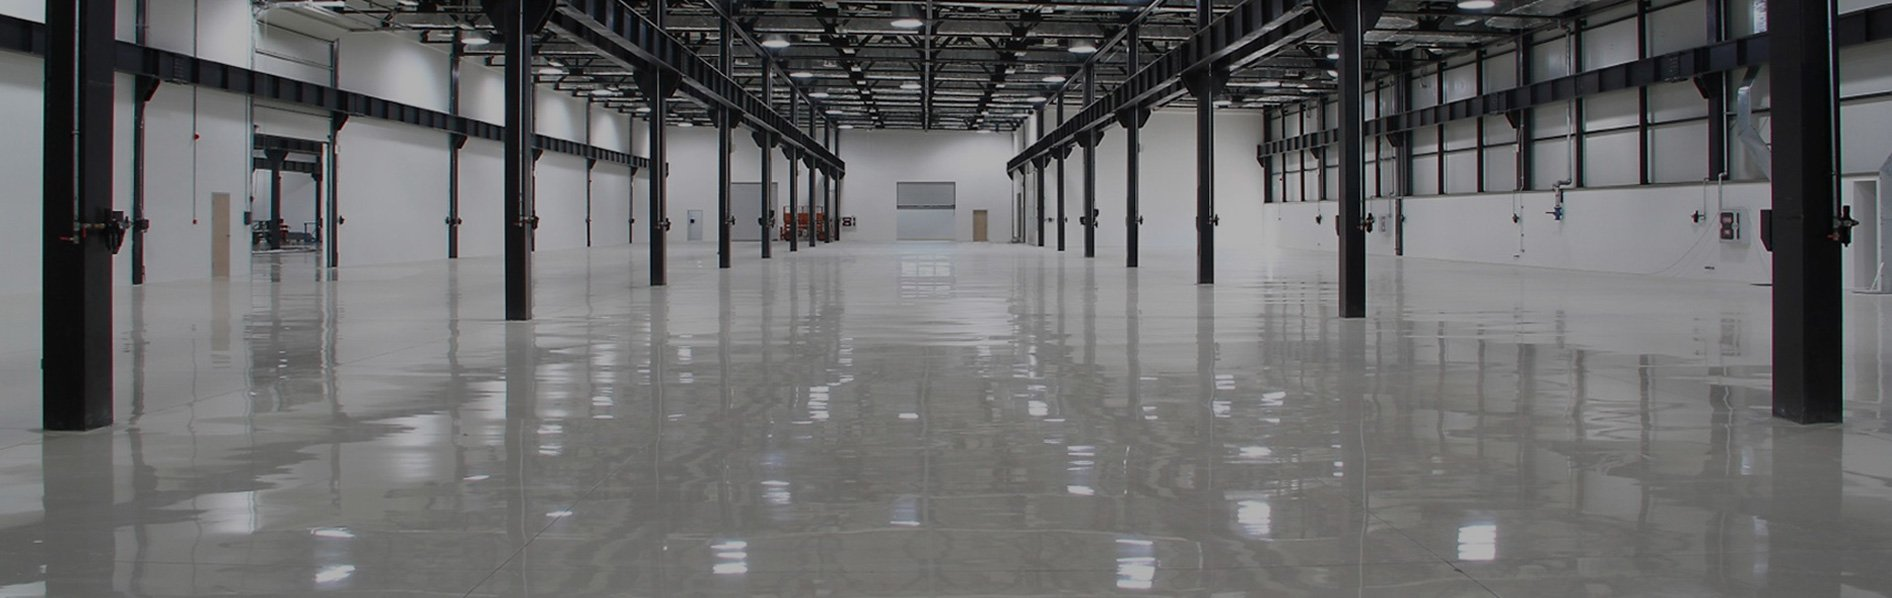 plant-floor-with-shadown_new